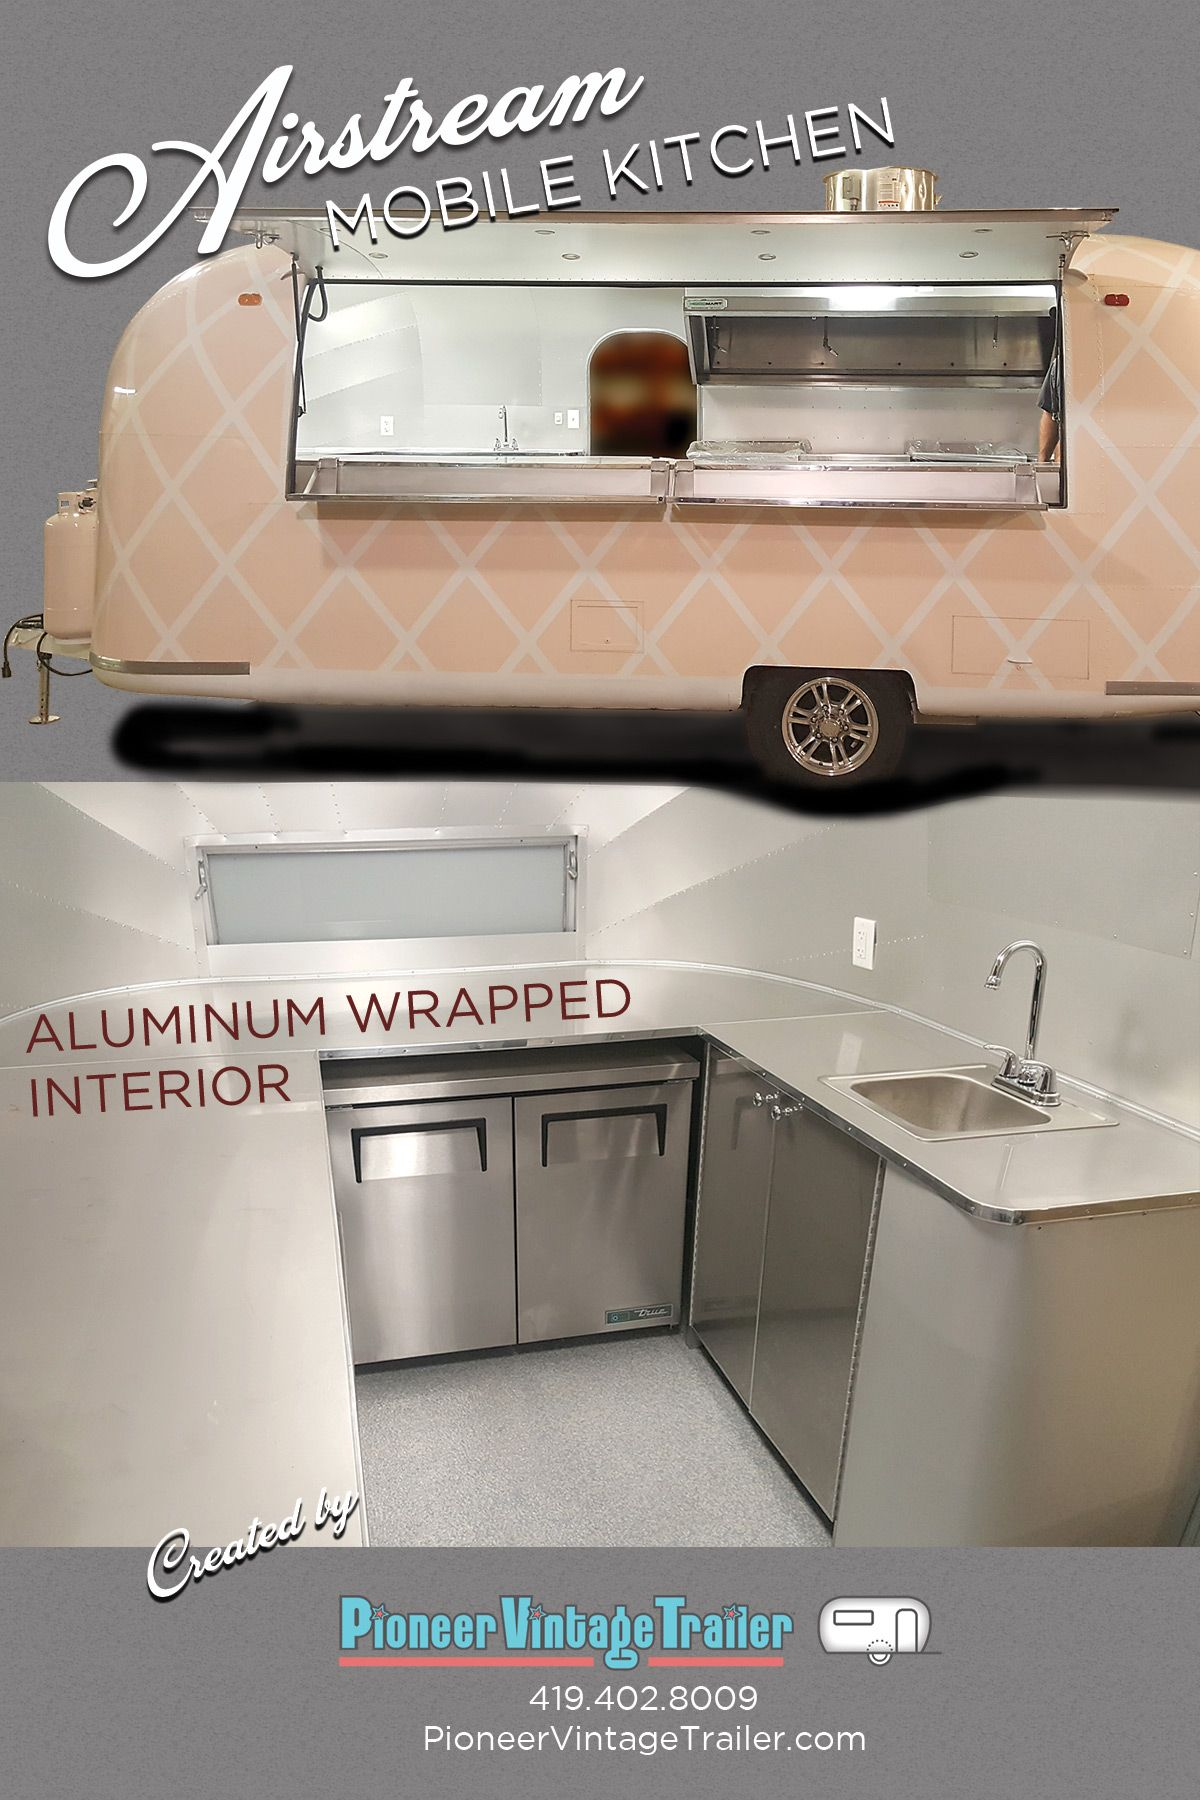 Airstream Mobile Kitchen Food Trailer Stainless Countertops Vintage Trailer